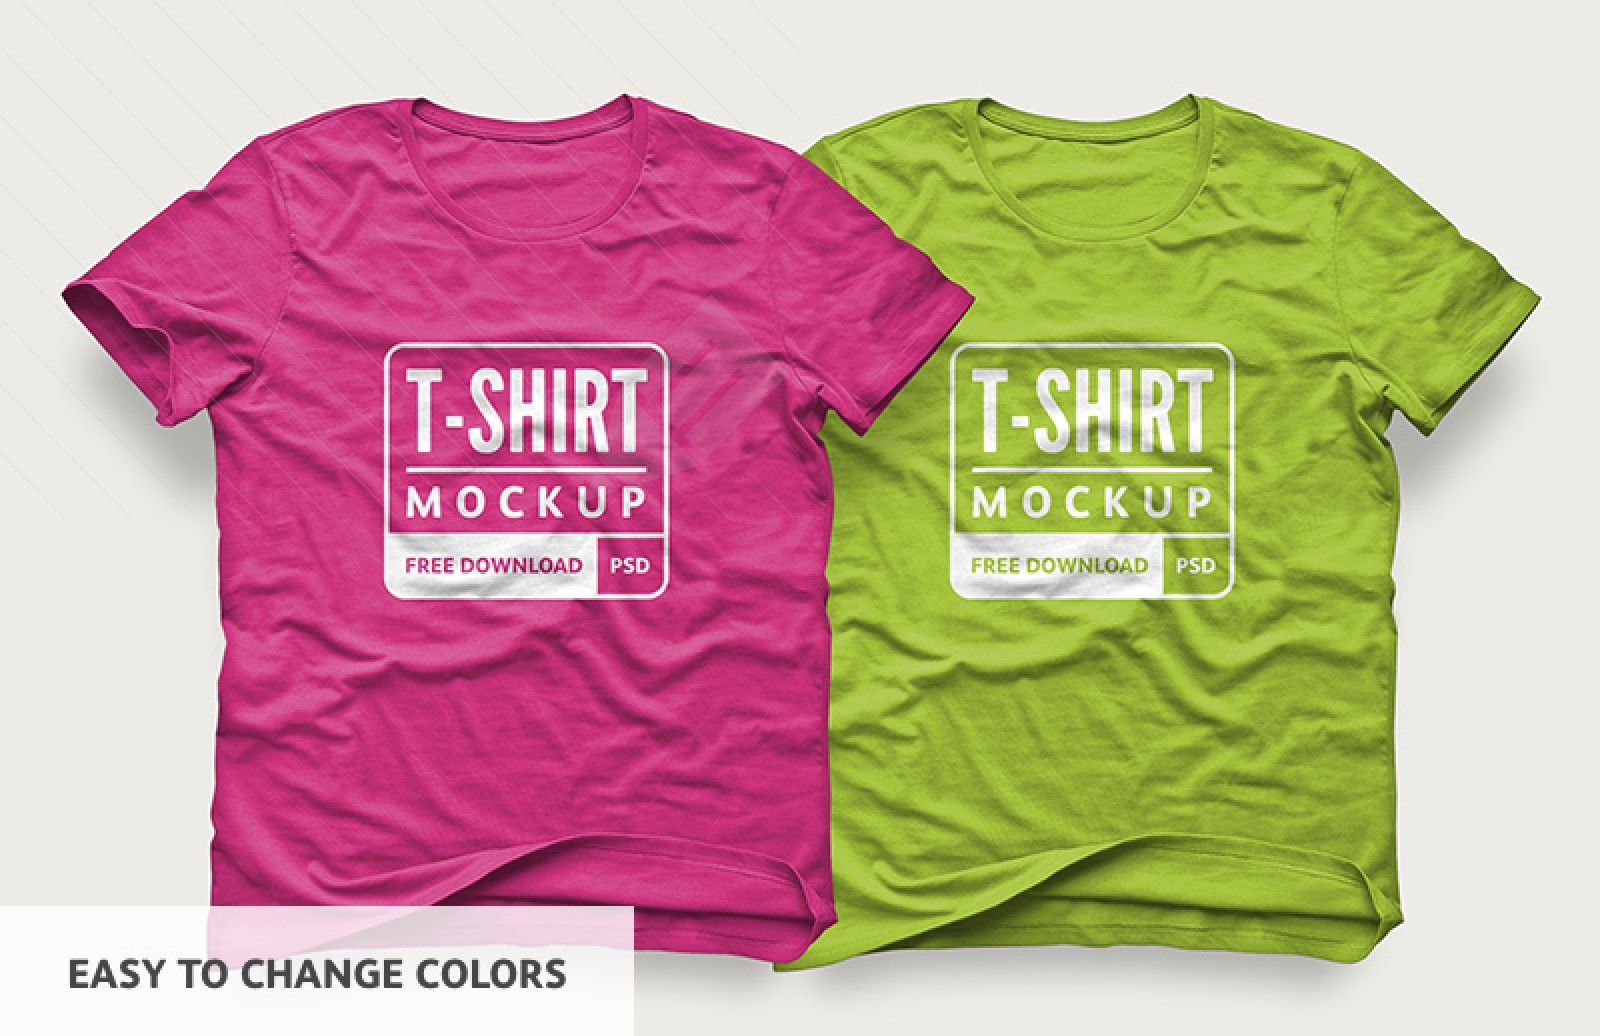 Easy To Change Colors Of T Shirt Mockup Freemockup Mockup